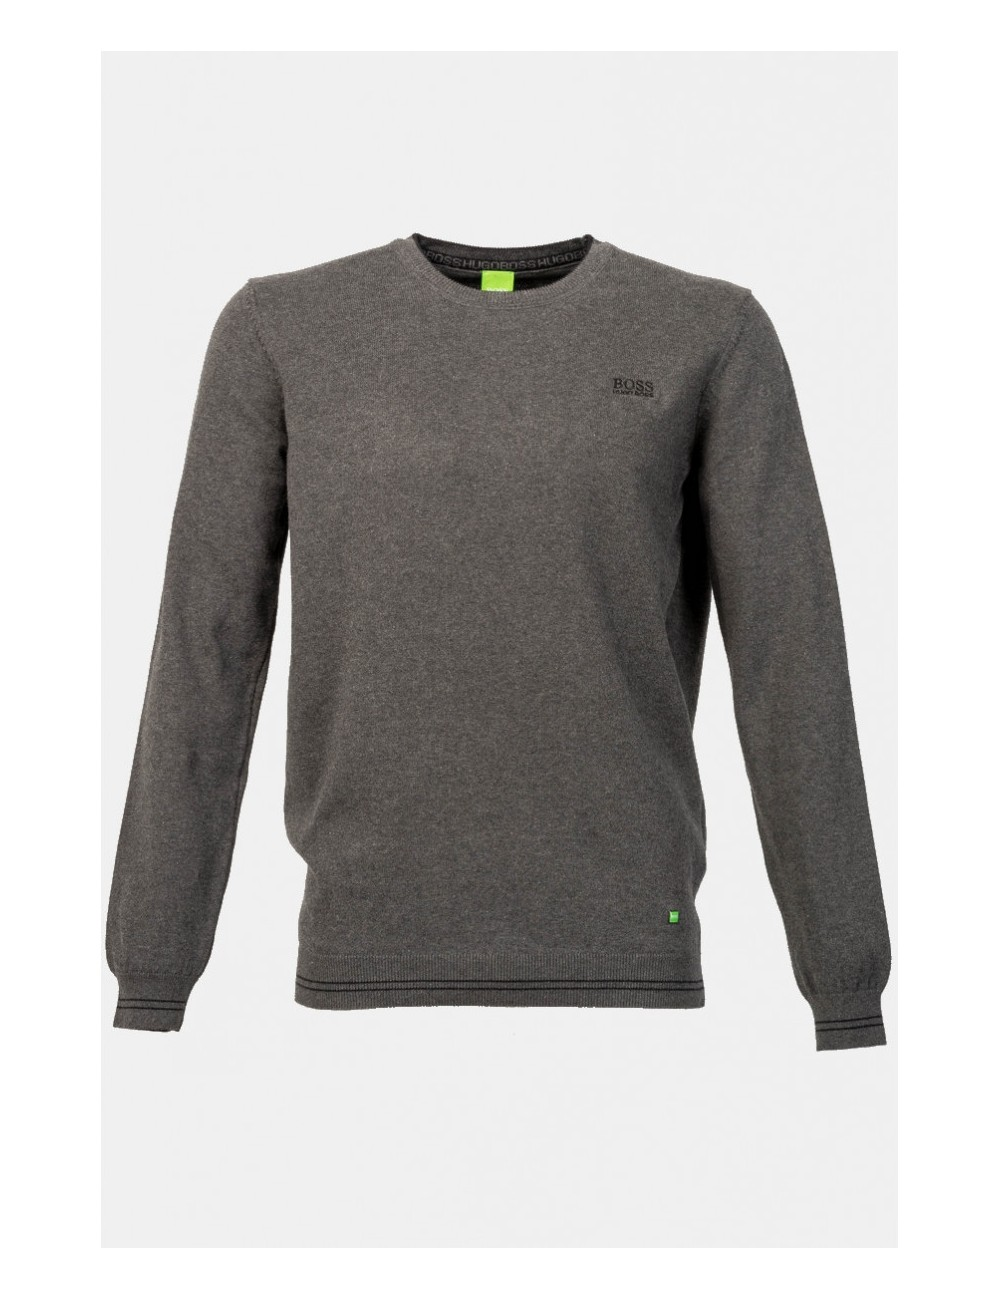 Sweater Hugo Boss Green . Gris claro